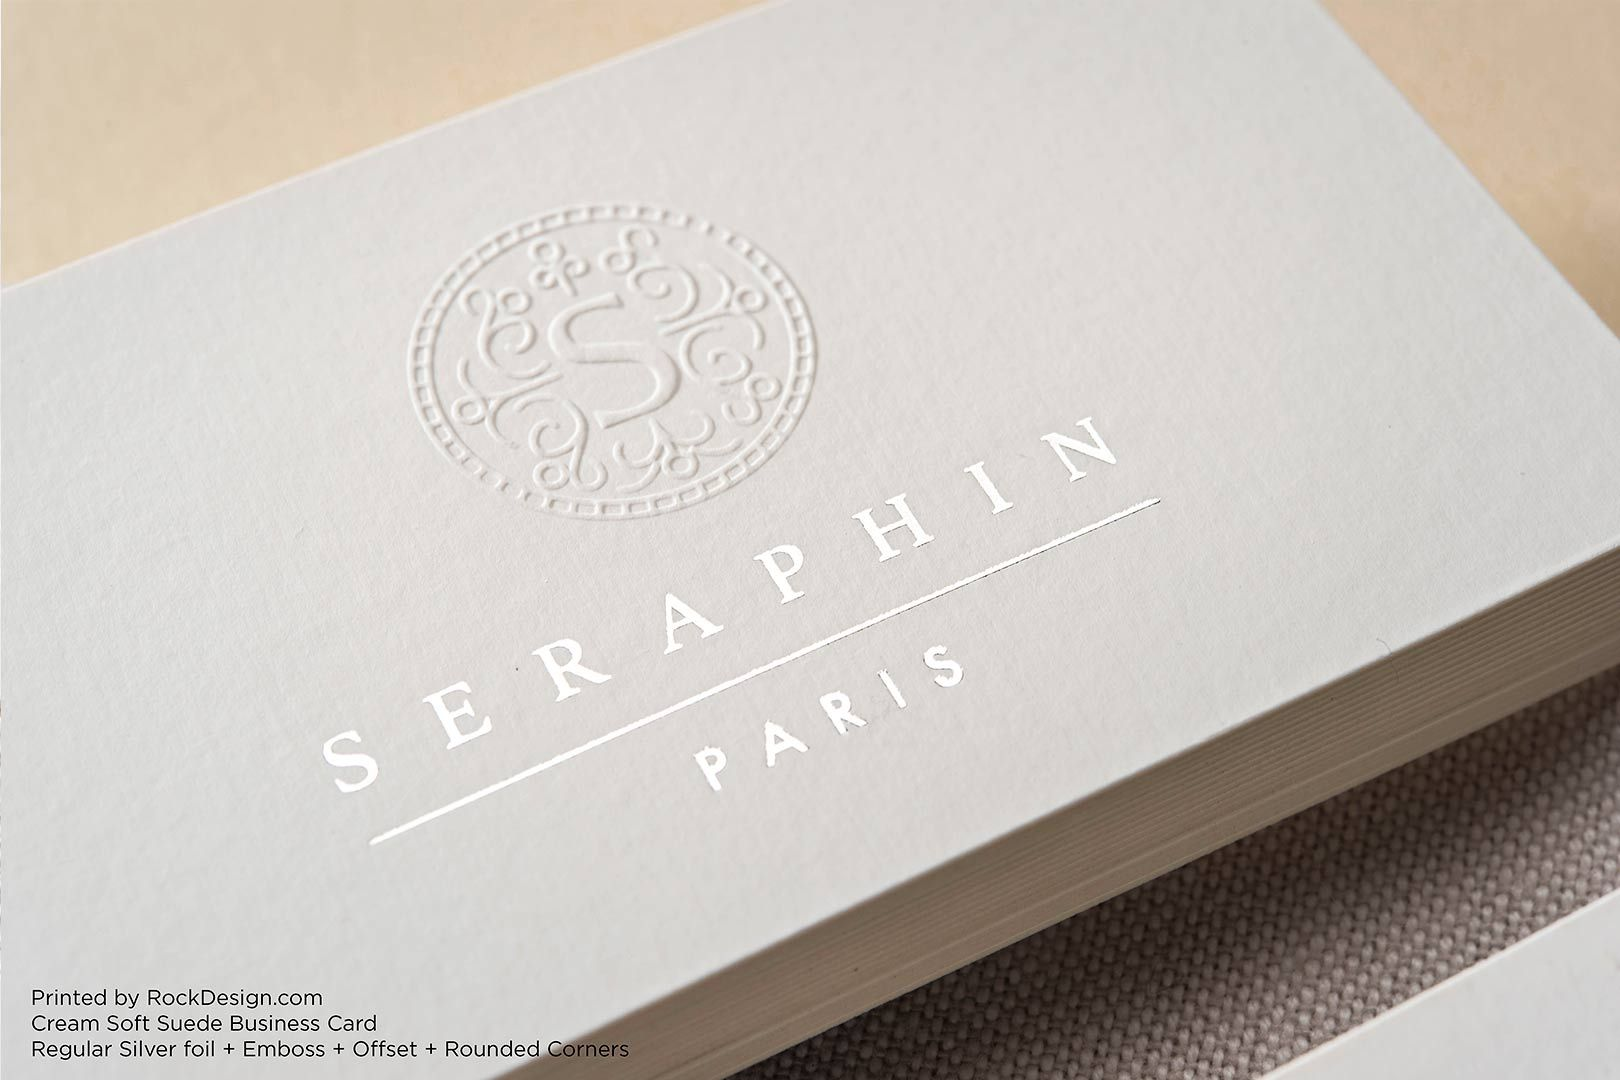 Soft Suede Business Cards | RockDesign Luxury Business Card Printing ...